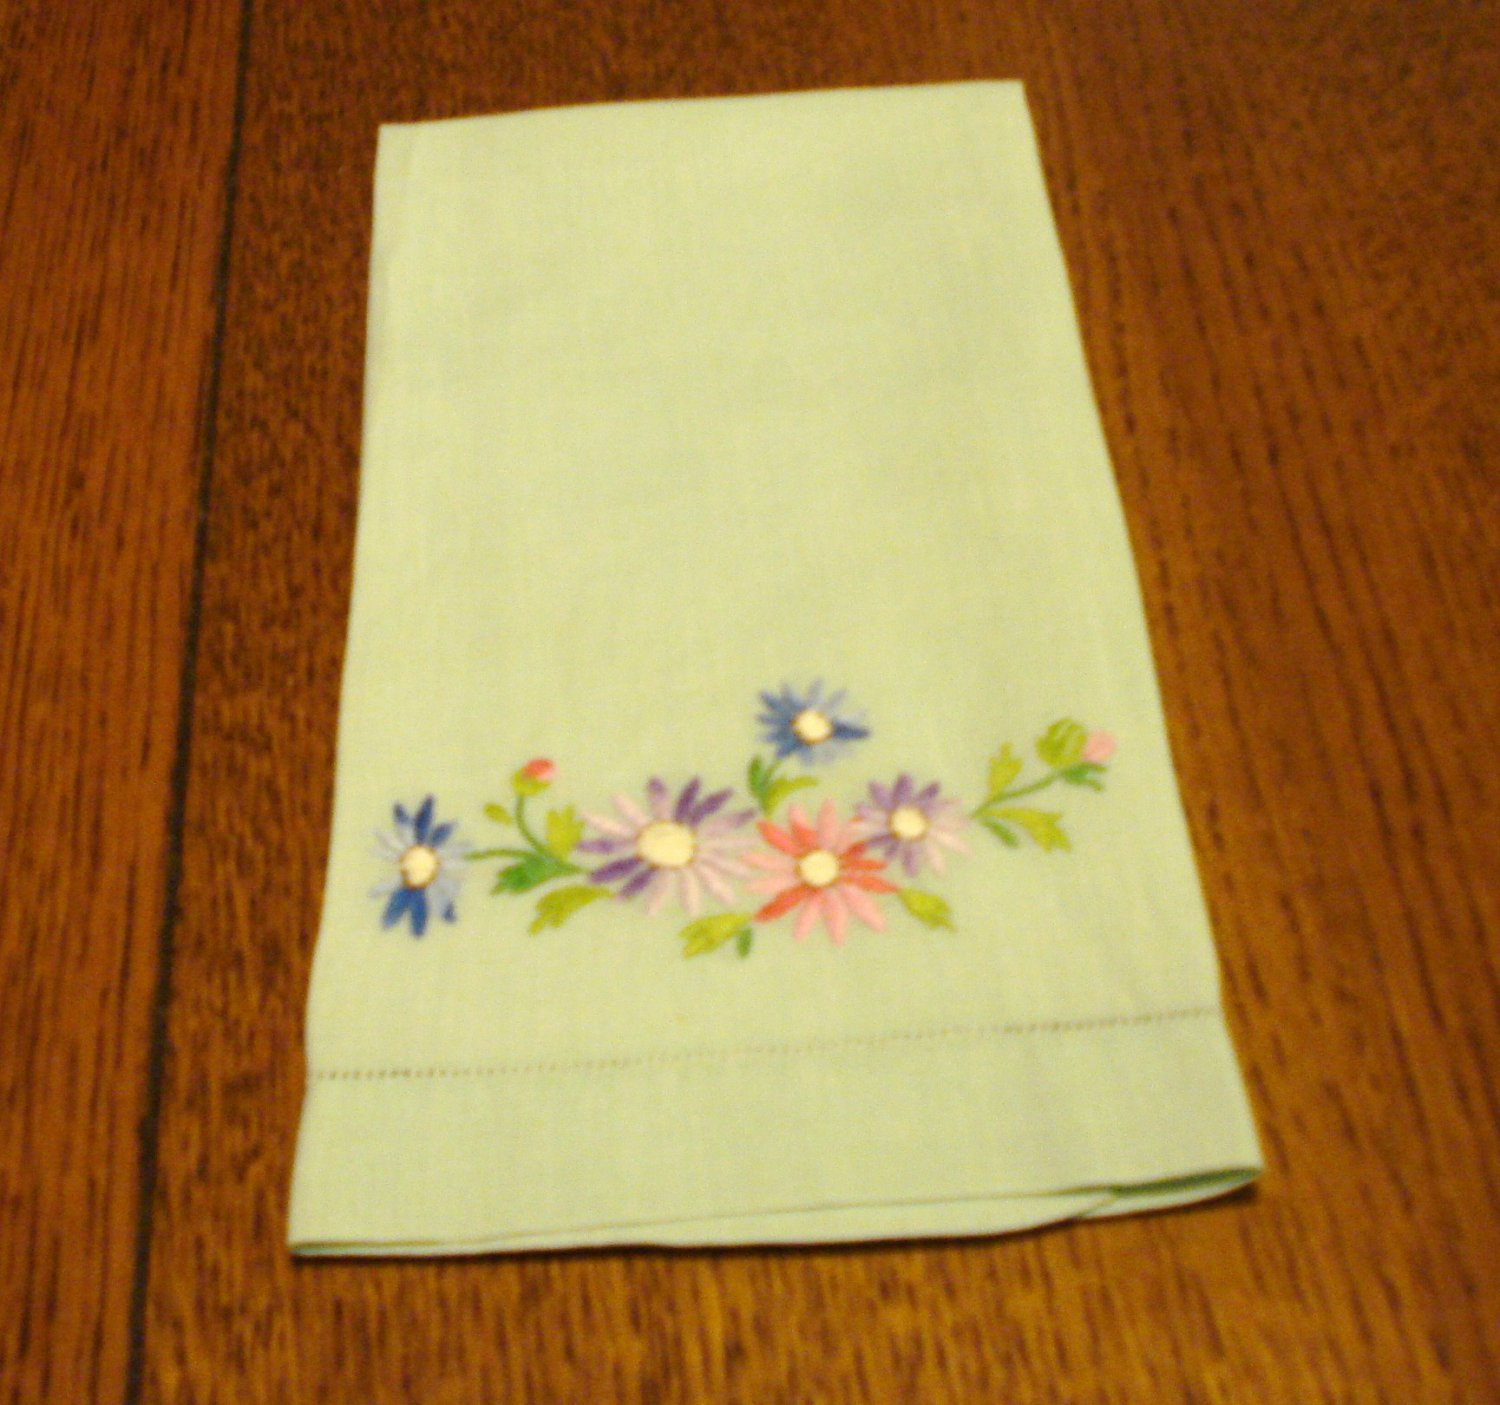 Mint green linen guest towel daisy embroidery fine antique condition hc2921